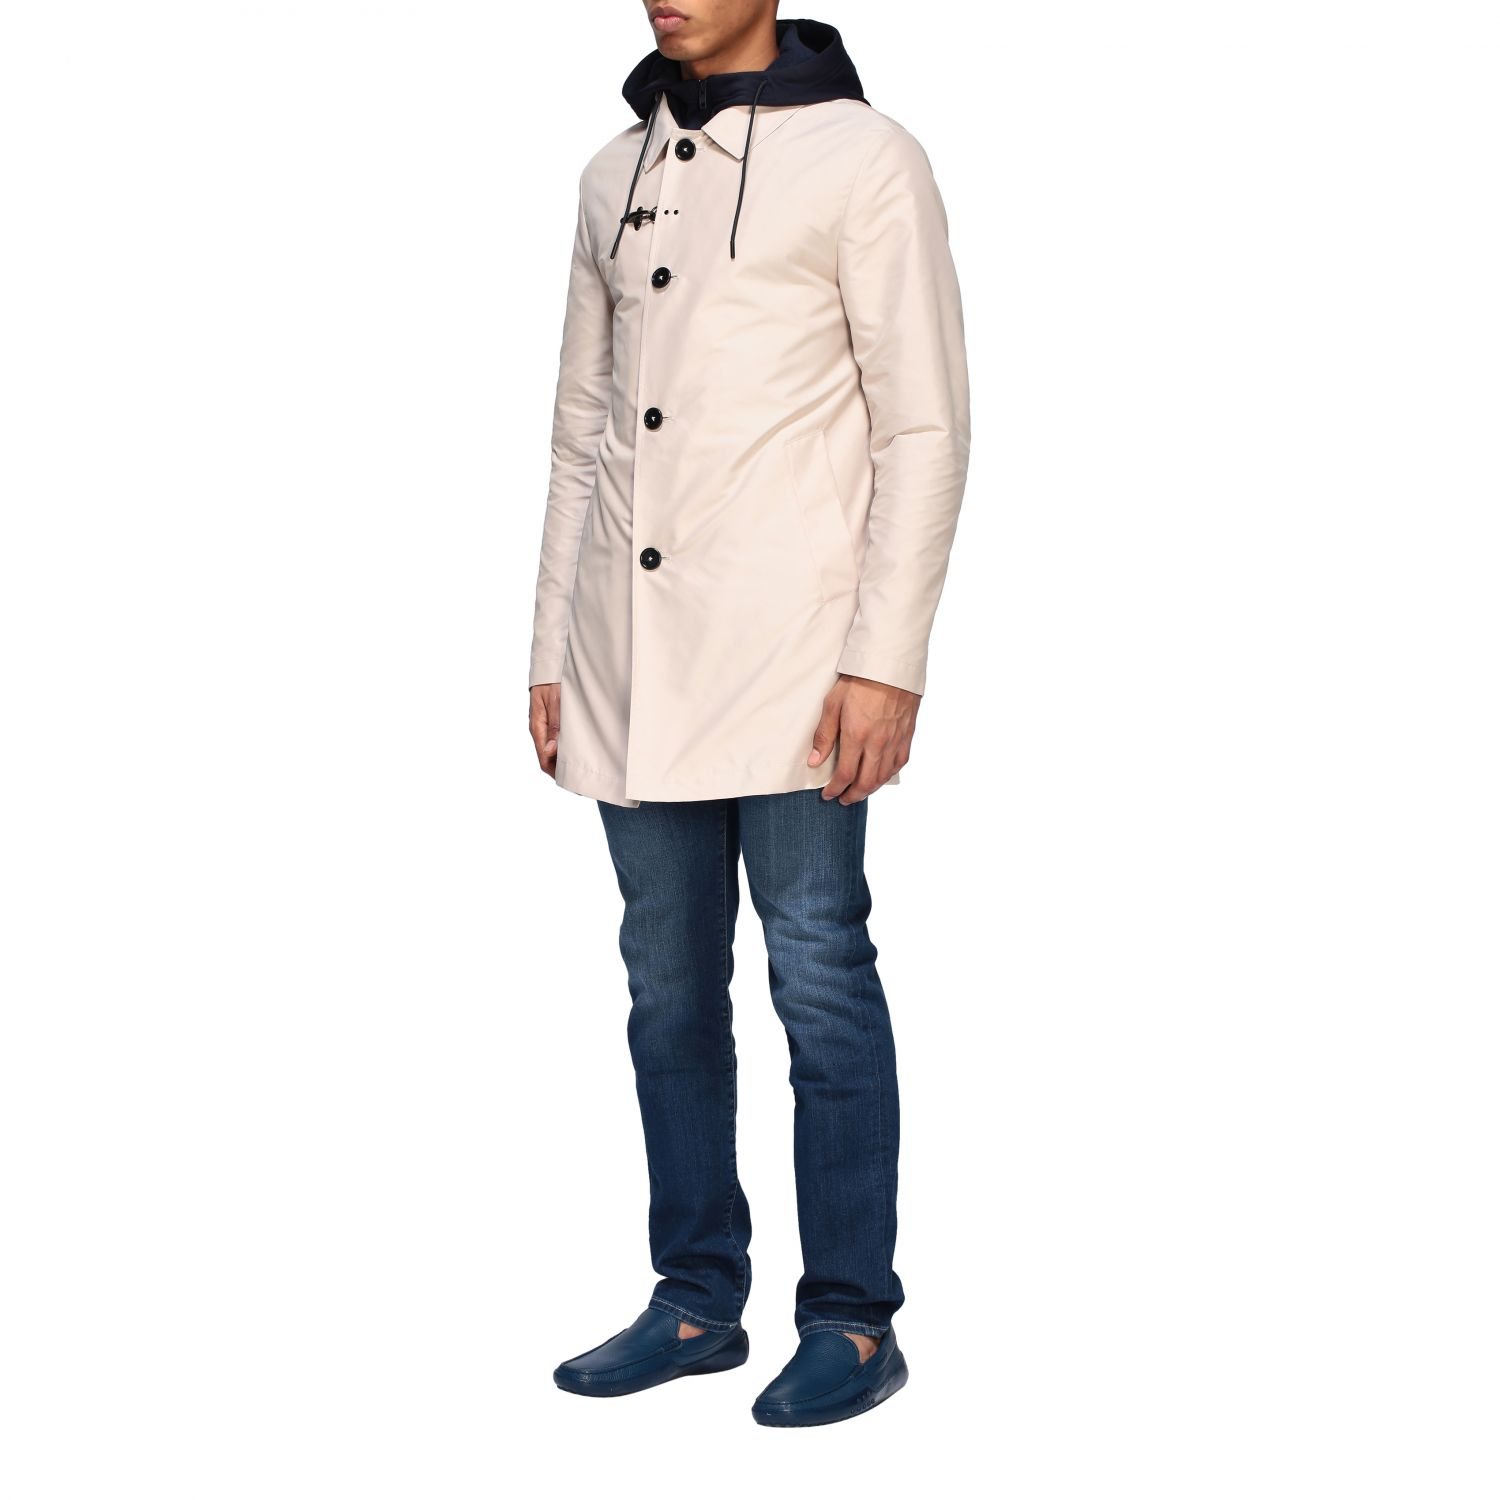 Trench Fay: Trench-coat droit à capuche Fay crème 3